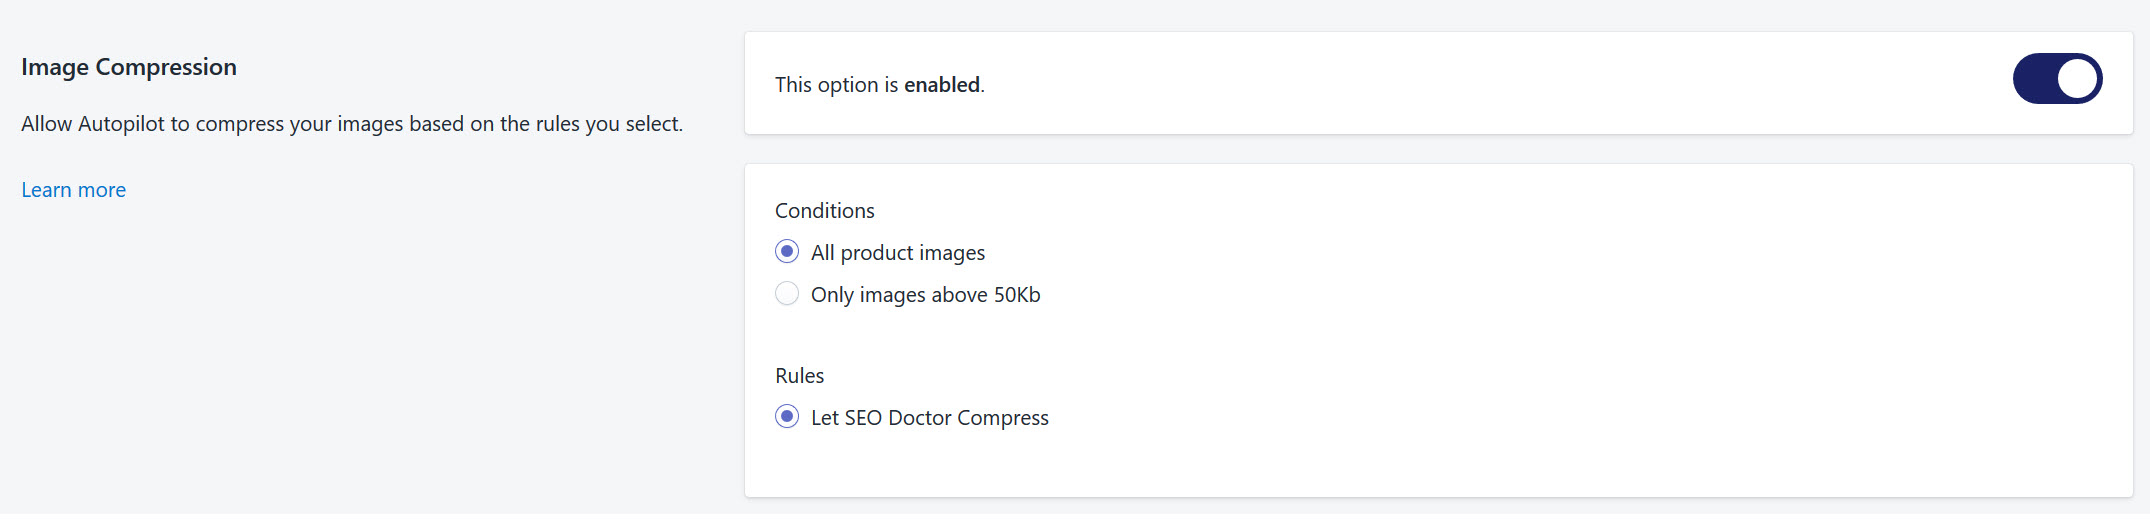 SEO Doctor Image Compression